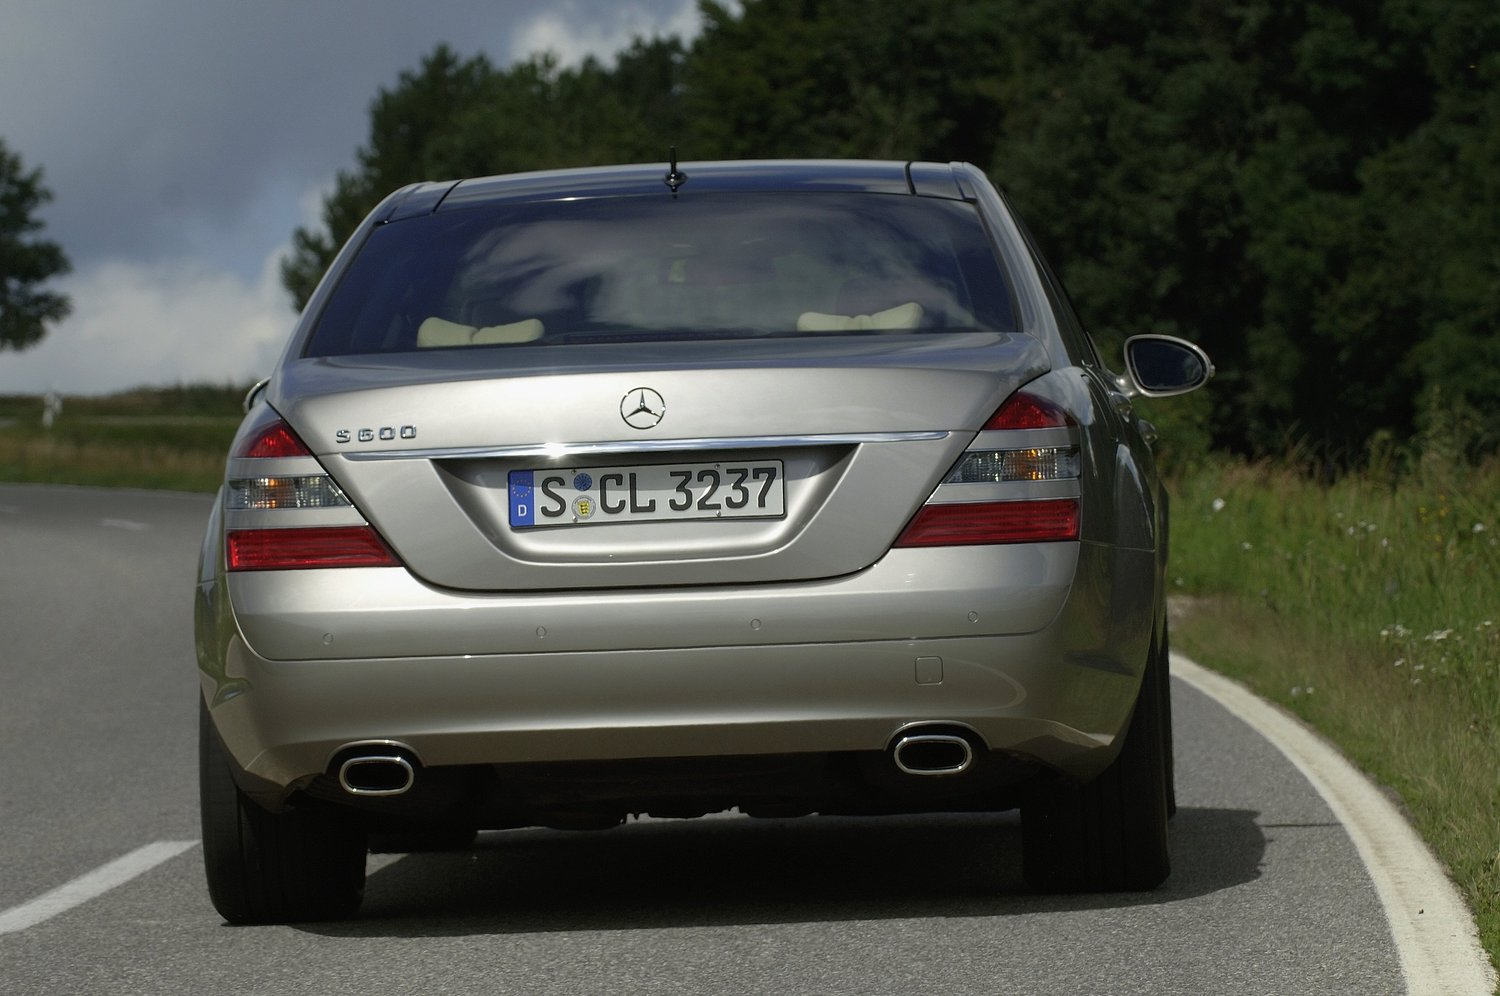 седан Long Mercedes-Benz S-klasse 2005 - 2009г выпуска модификация 3.0 AT (231 л.с.)